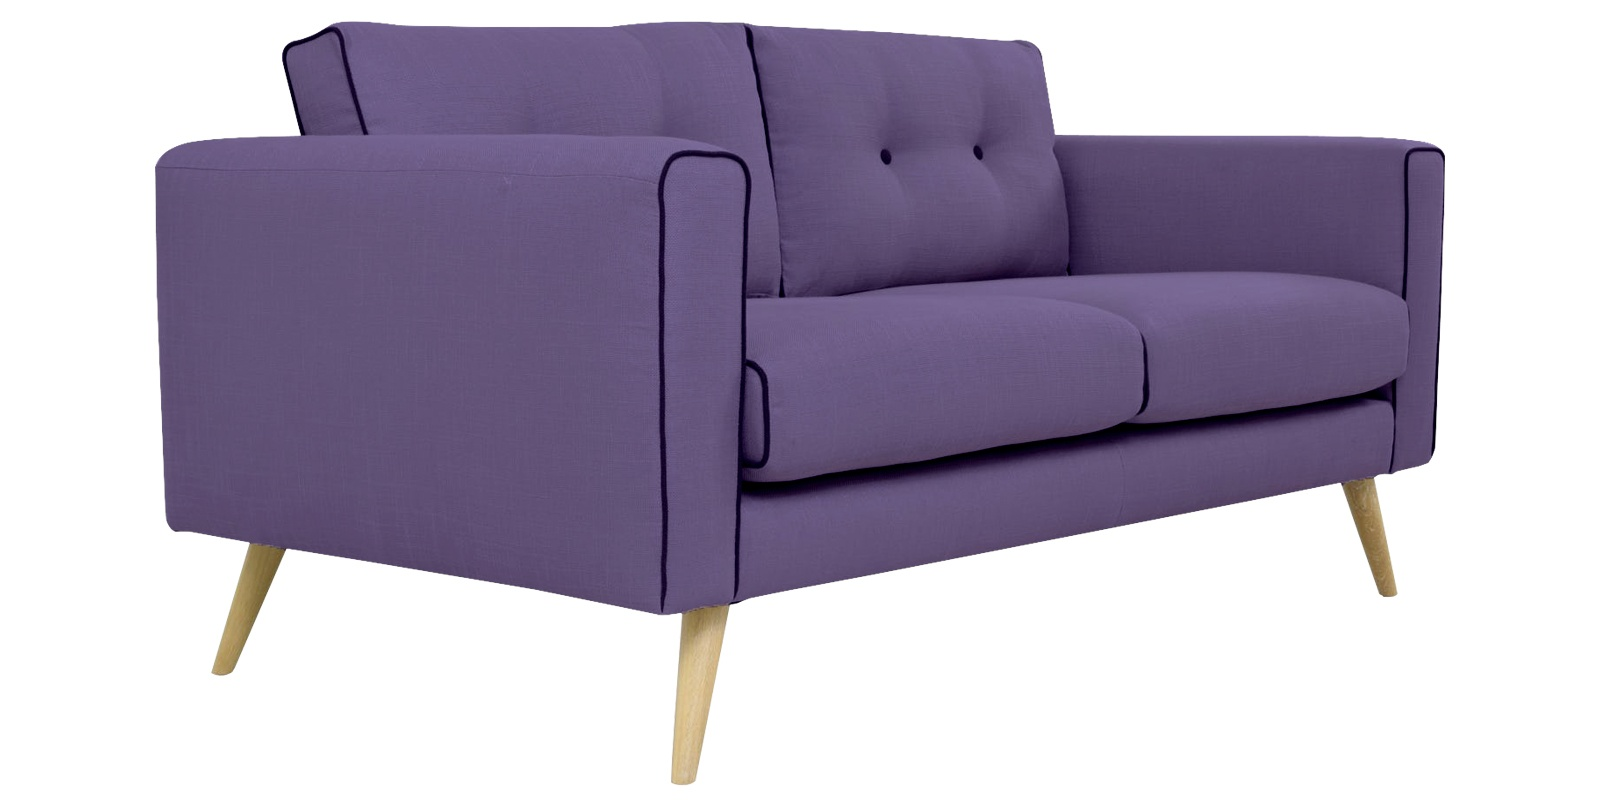 Two Seater Sofa In Light Purple Colour